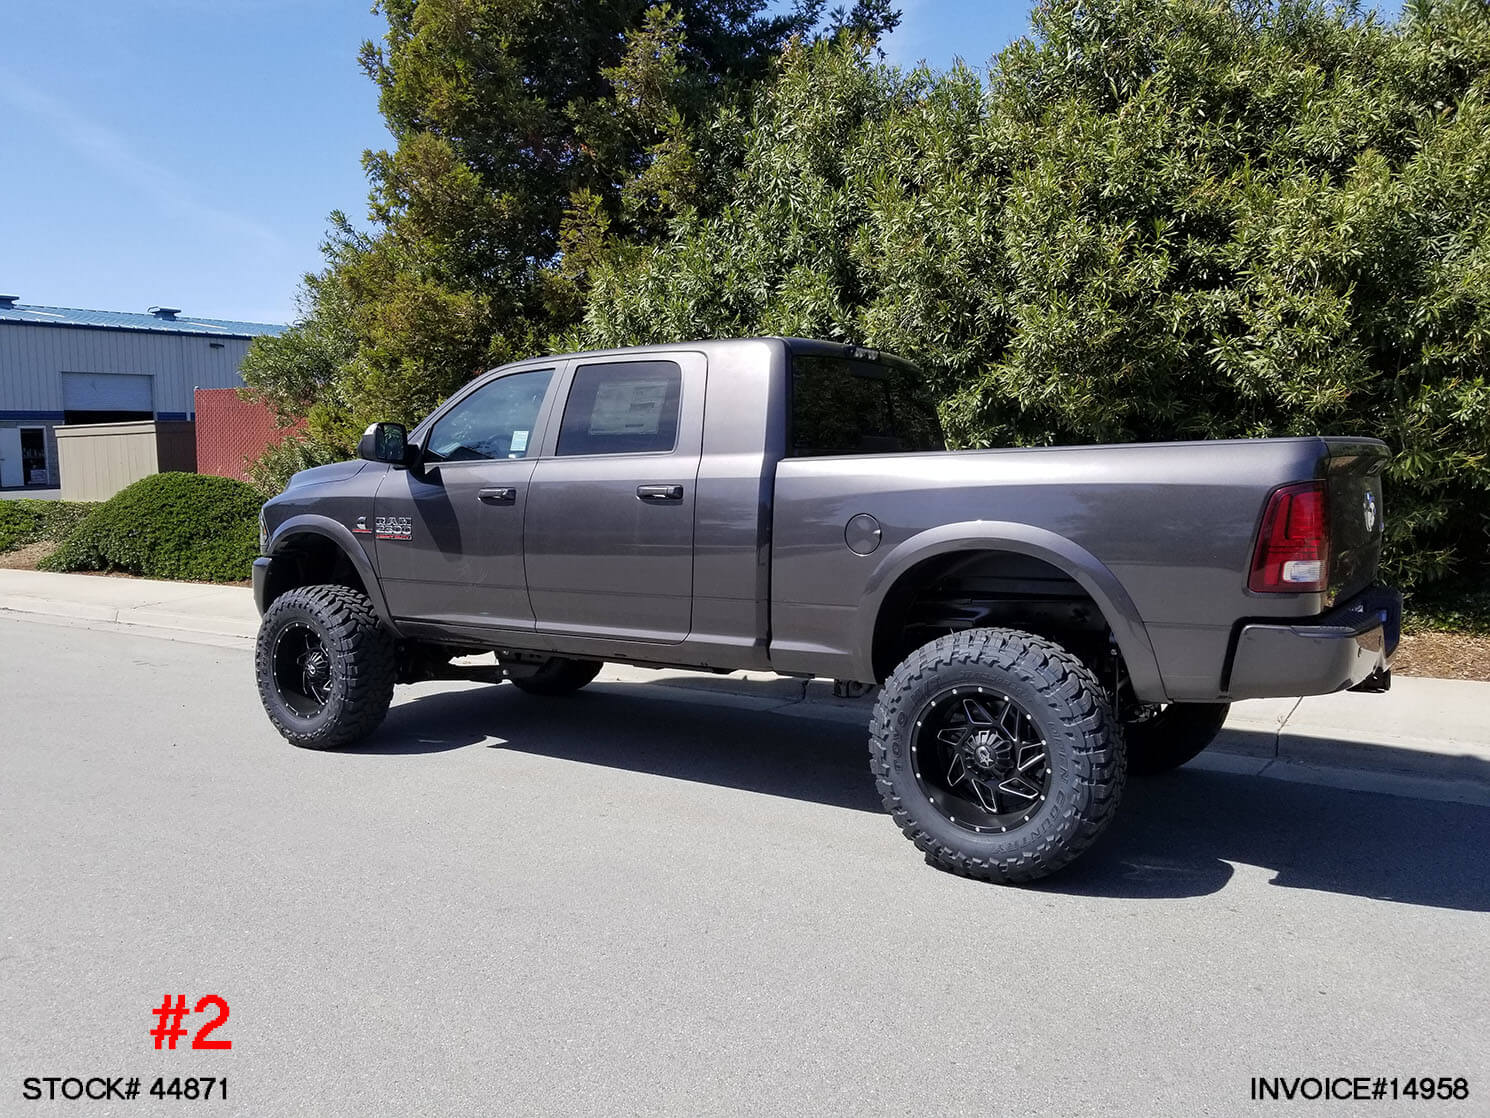 Sold 2018 Dodge Ram 2500 Mega Cab 44871 Truck And Suv Parts Warehouse